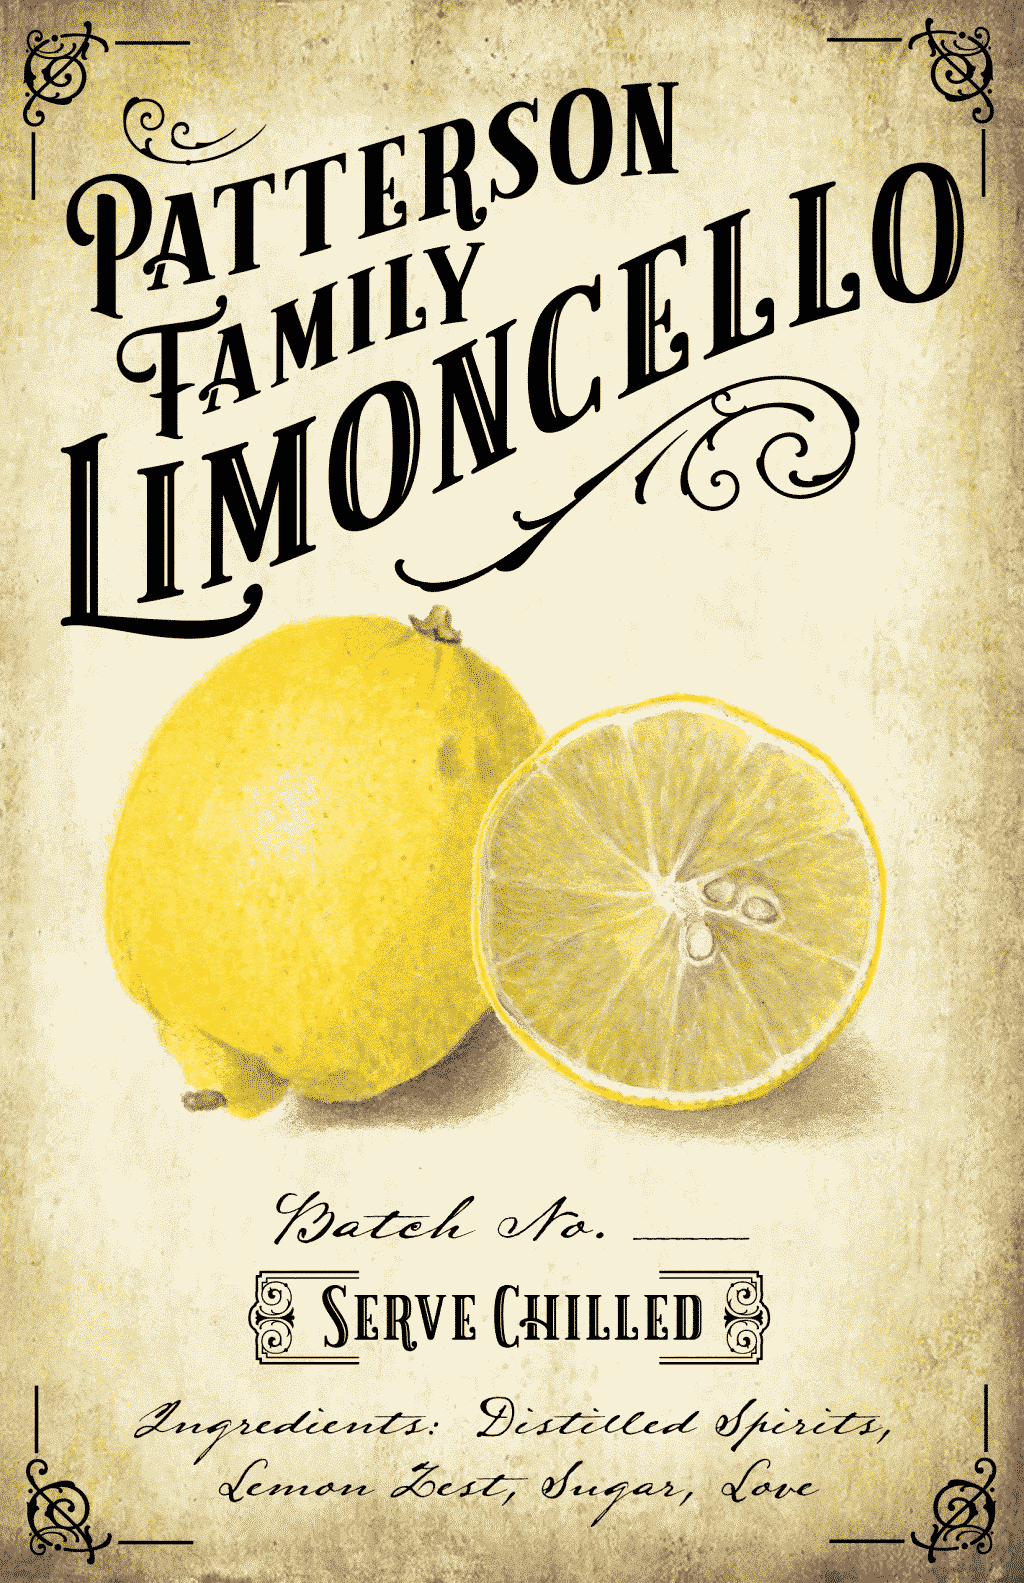 Free Limoncello Labels - Easy Craft Ideas